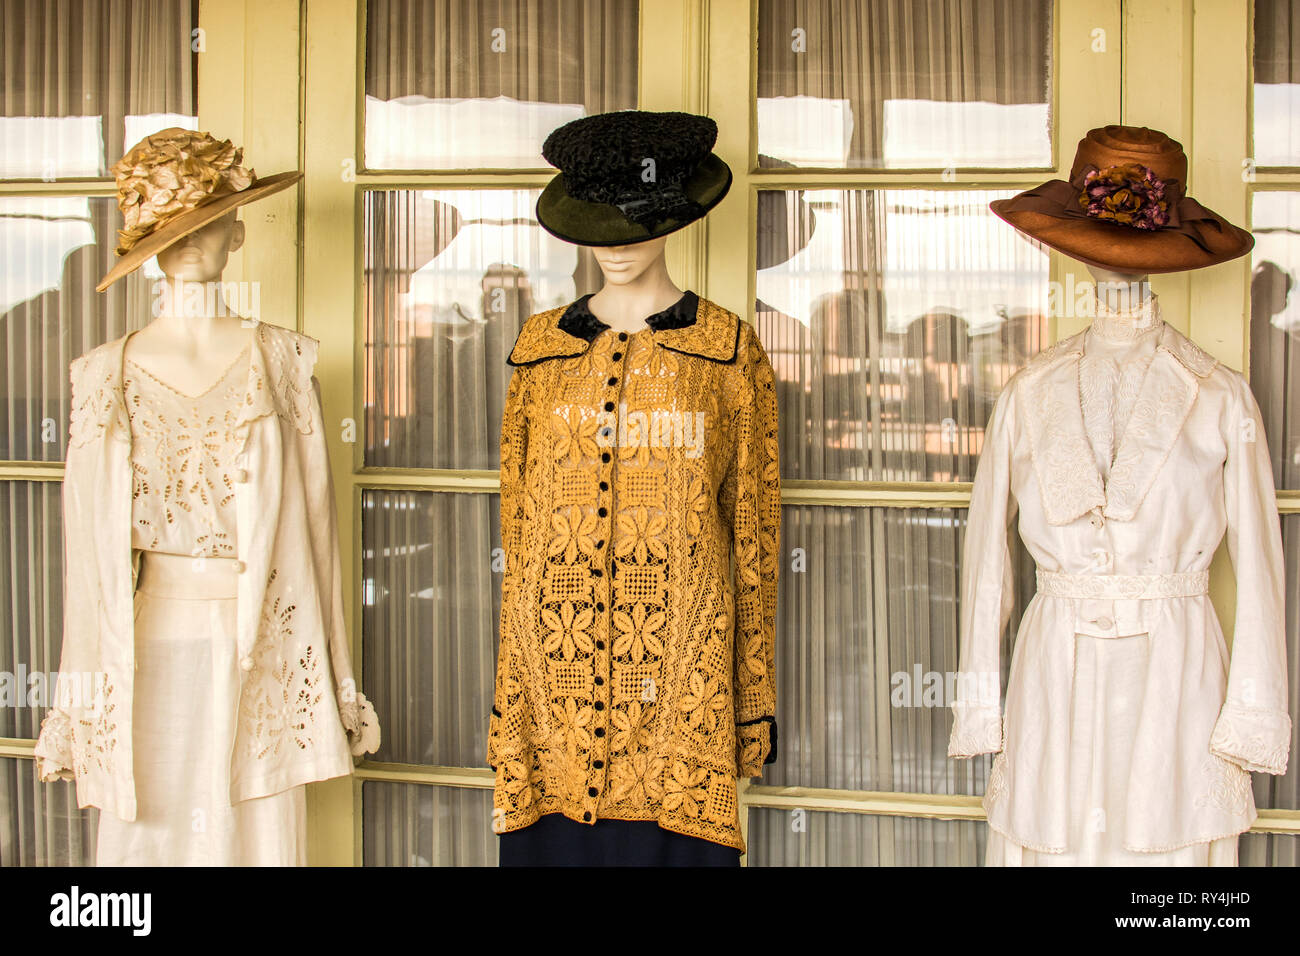 Examples of women's fashion from the 1890's, United States. - Stock Image